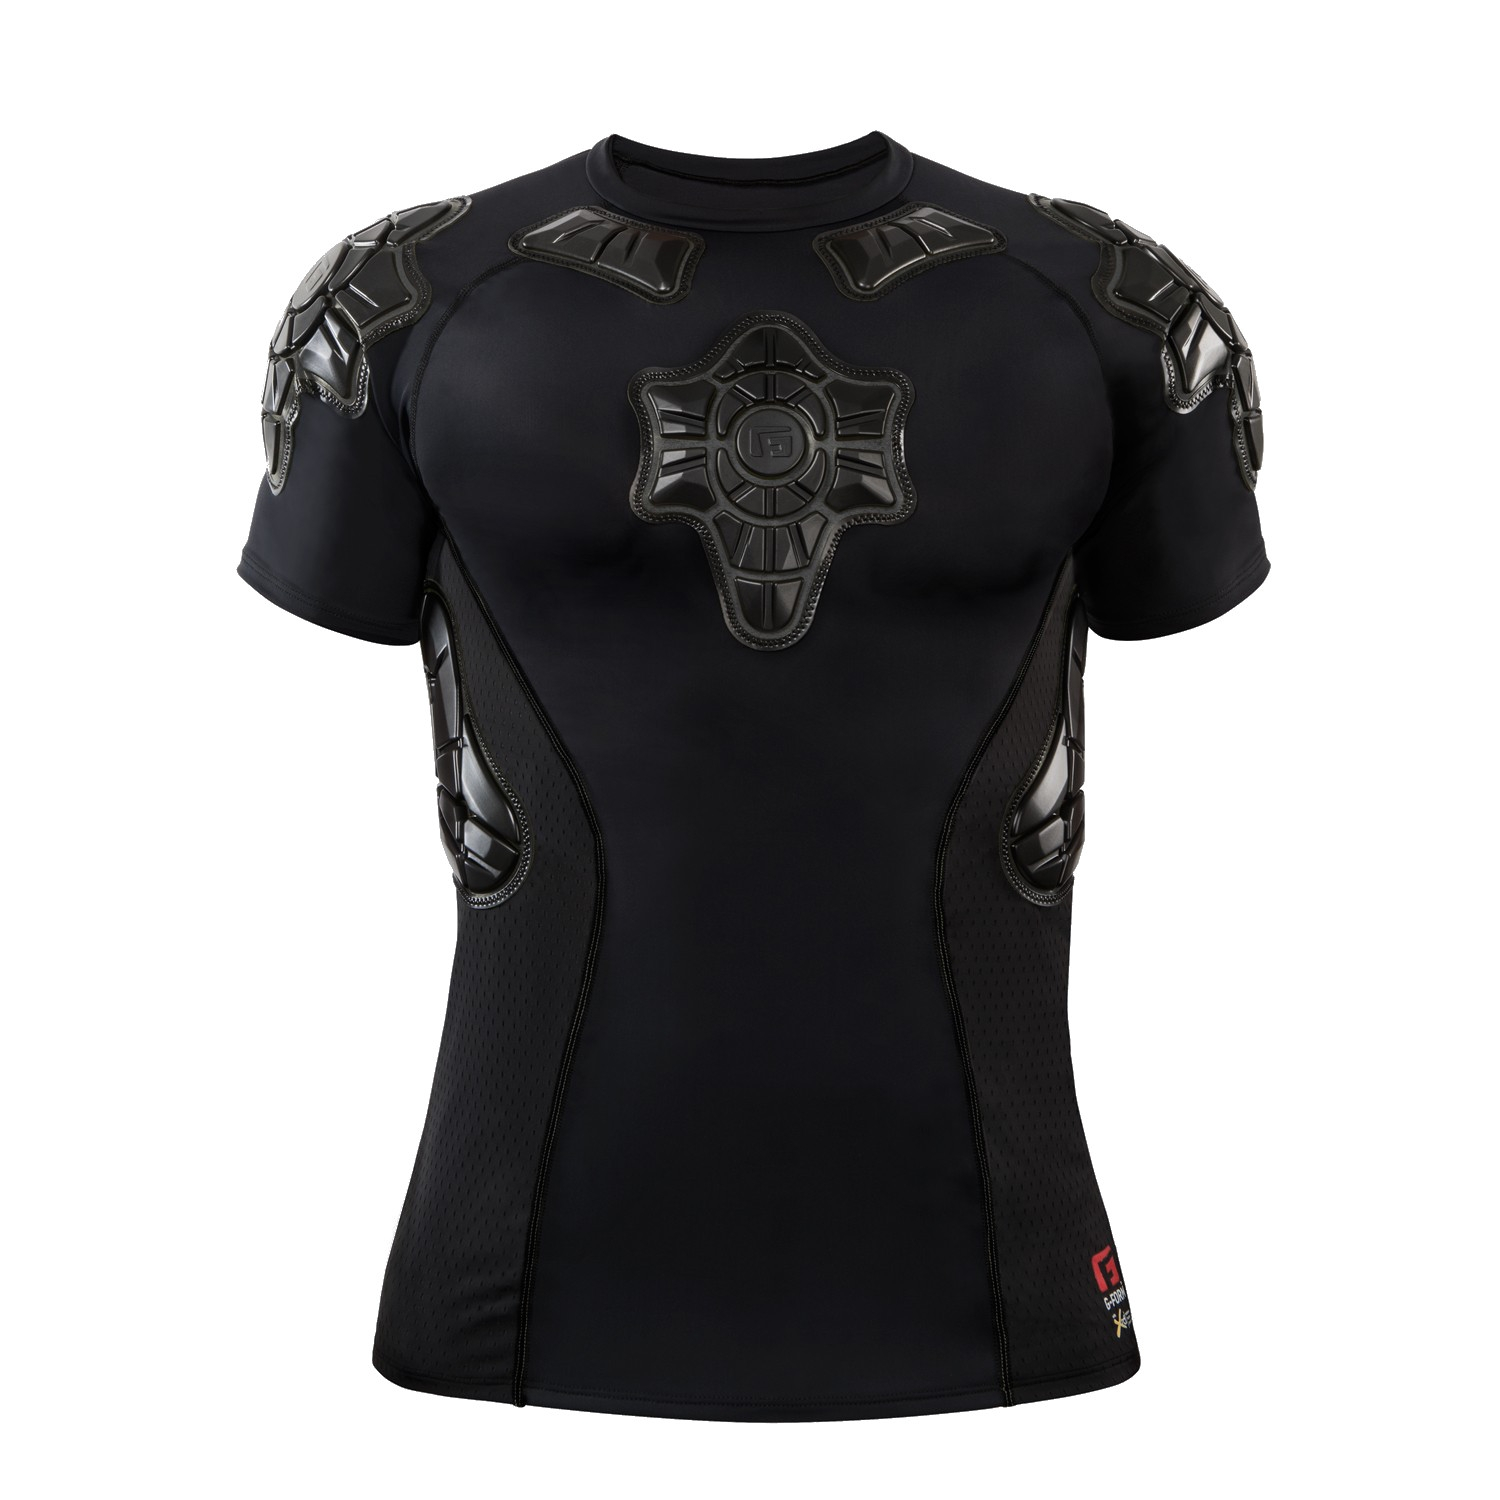 Tee-shirt de protection G-Form Pro-X Noir/Gris - M